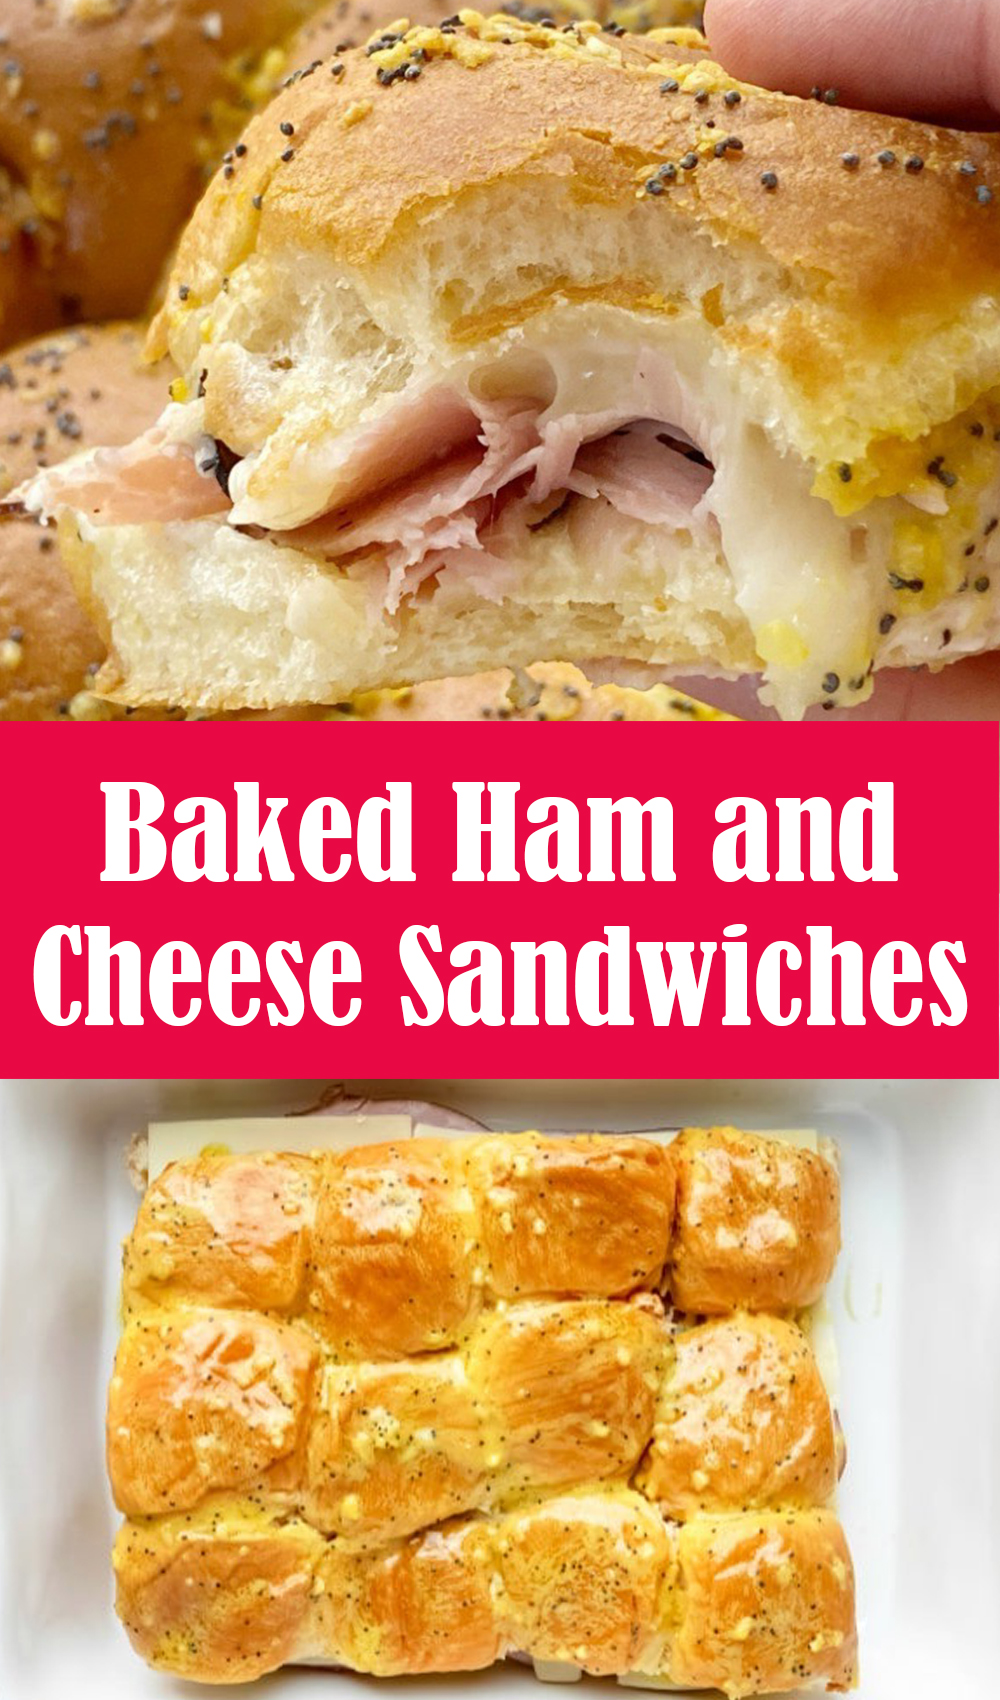 Delicious Baked Ham and Cheese Sandwiches